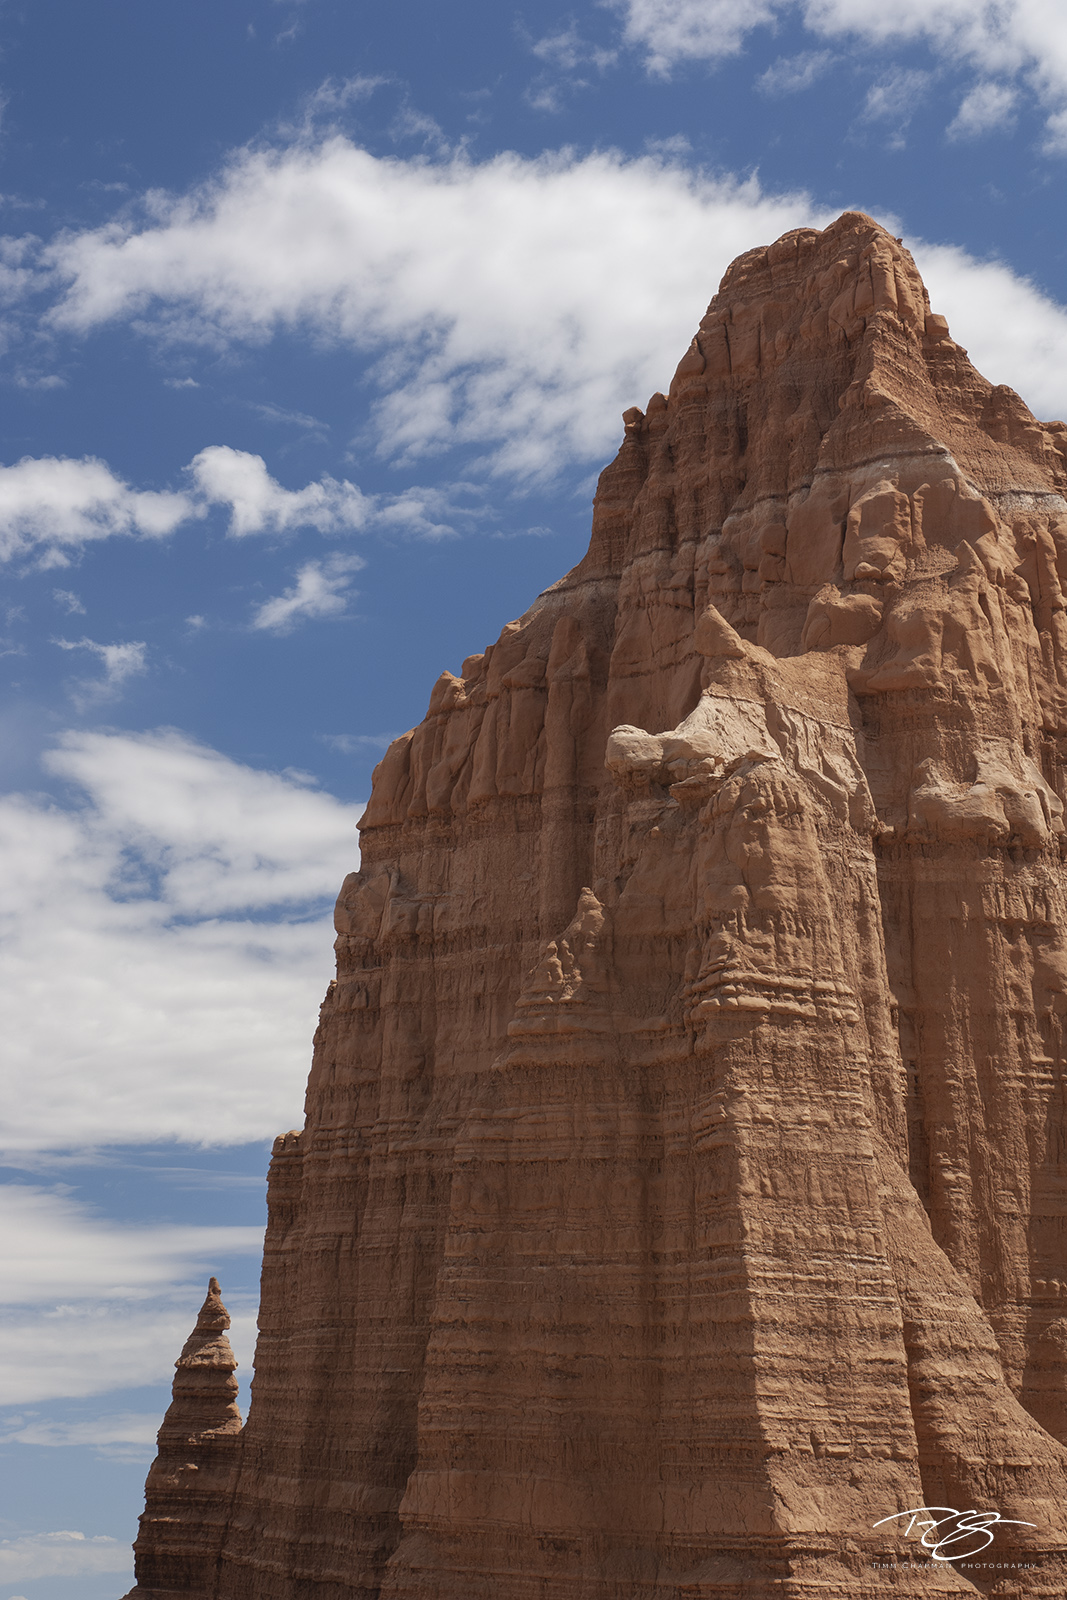 Rising to a height of 1704 metres (~5600 feet), the Temple of the Moon towers above the valley floor in central Utah's Colorado...